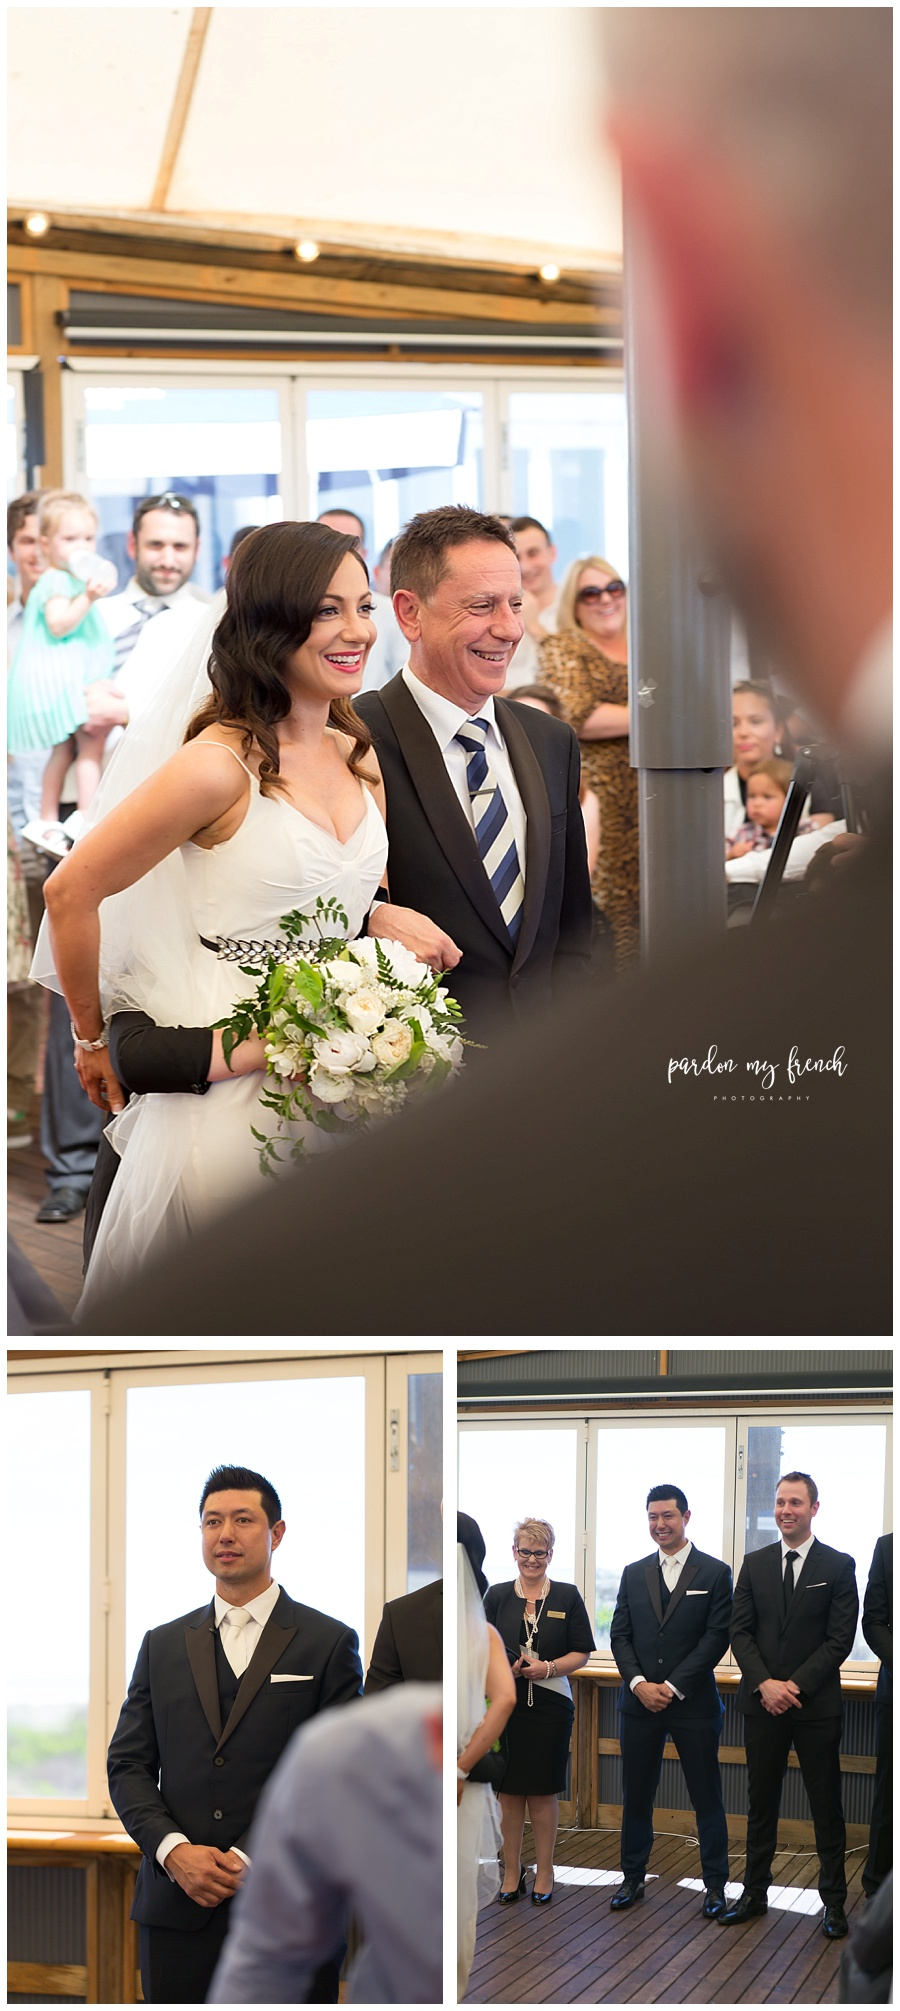 Adelaide Wedding Photographer 46.jpg